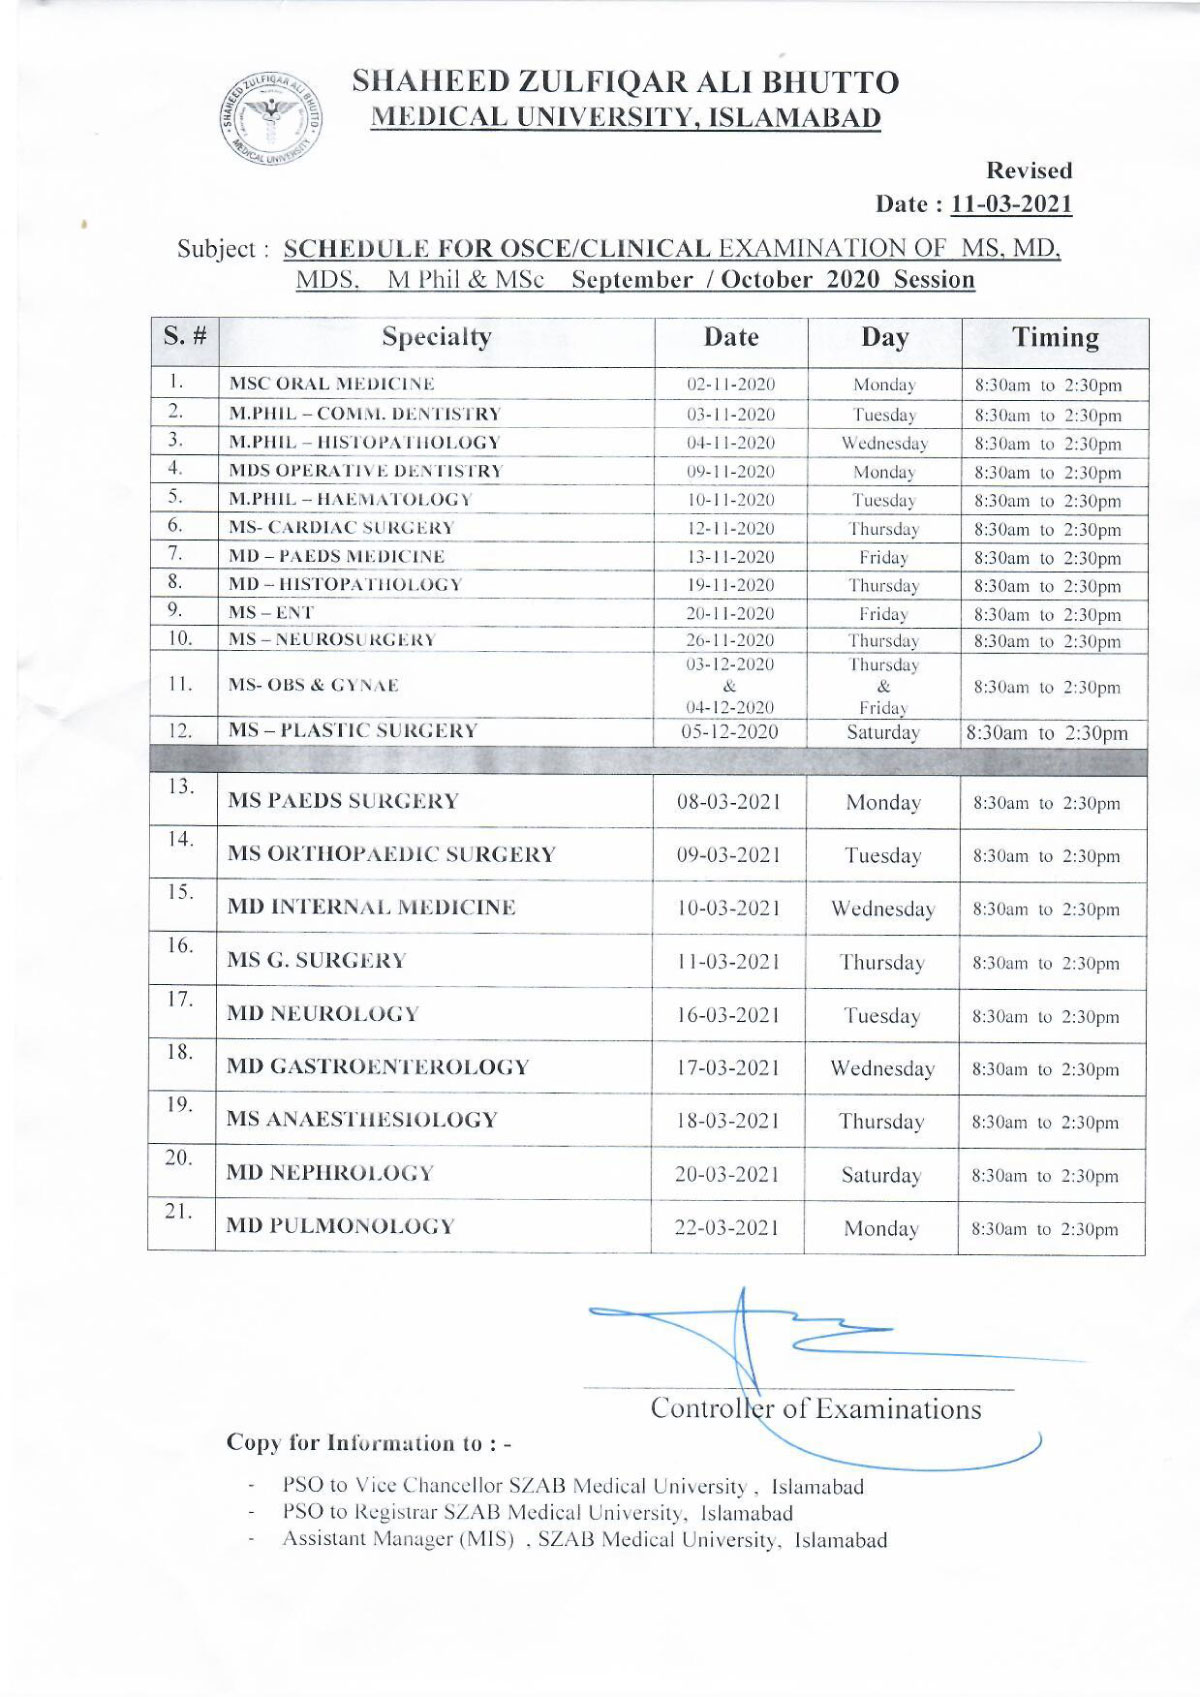 Revised schedule of Clinical Examination - Revised on 11-03-2021